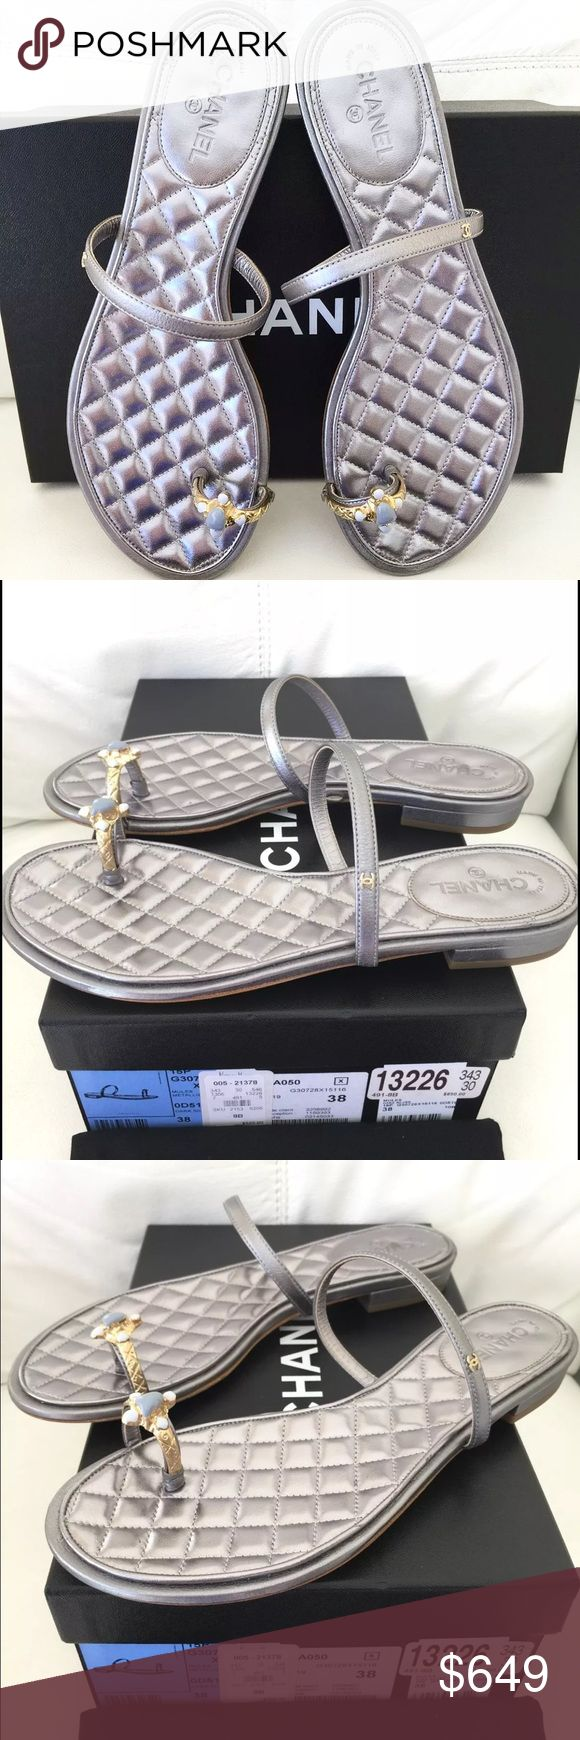 CHANEL TOE RING SILVER FLAT SANDALS SHOES 38 FLATS Come with CHANEL original box AND DUST BAG     These are AMAZING and SUPER COMFORTABLE!!!!!  Description:  ·      Color: silver   ·      Size: 38 CHANEL Shoes Sandals